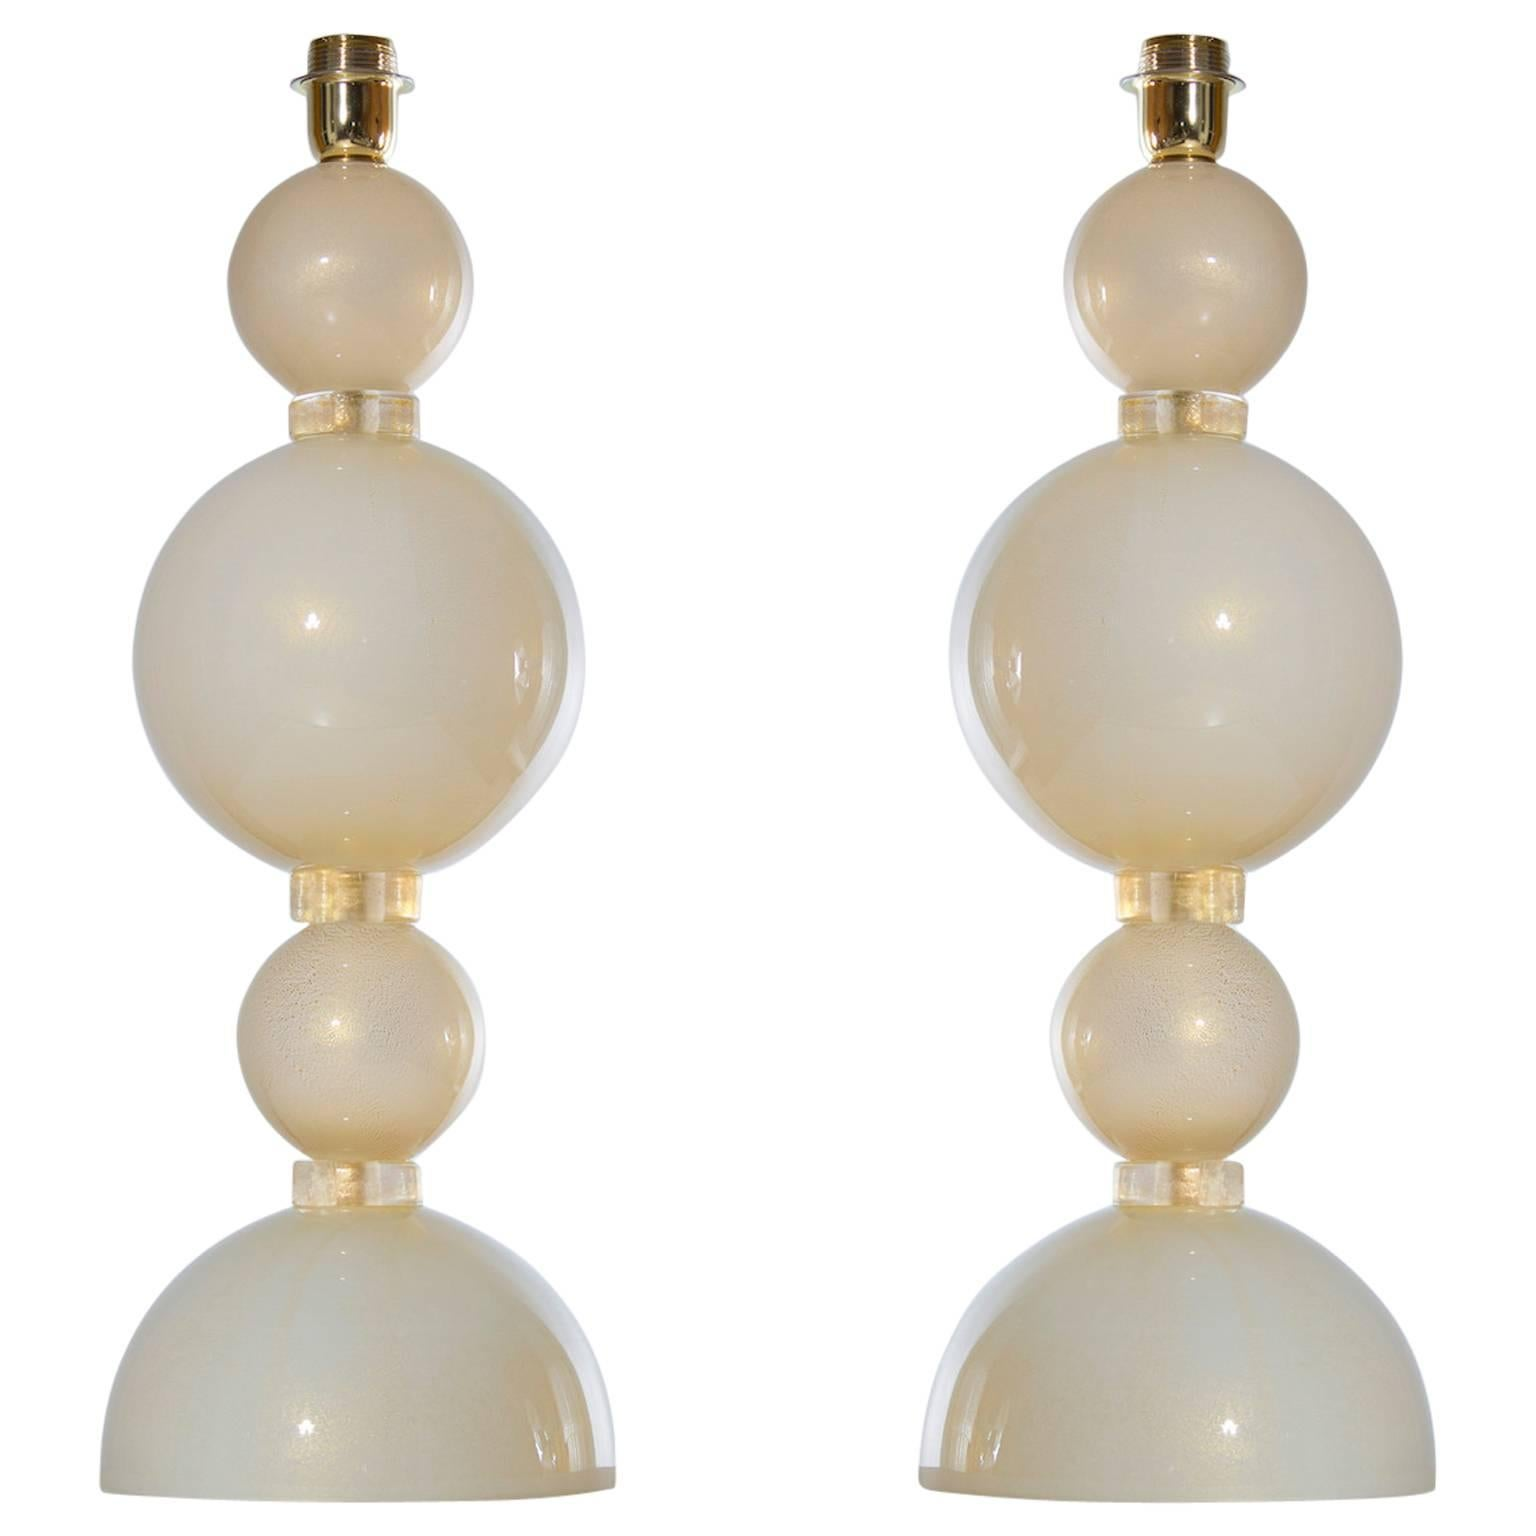 Italian Venetian Pair of Table Lamps, Blown Murano Glass, Ivory and Gold, 1970s